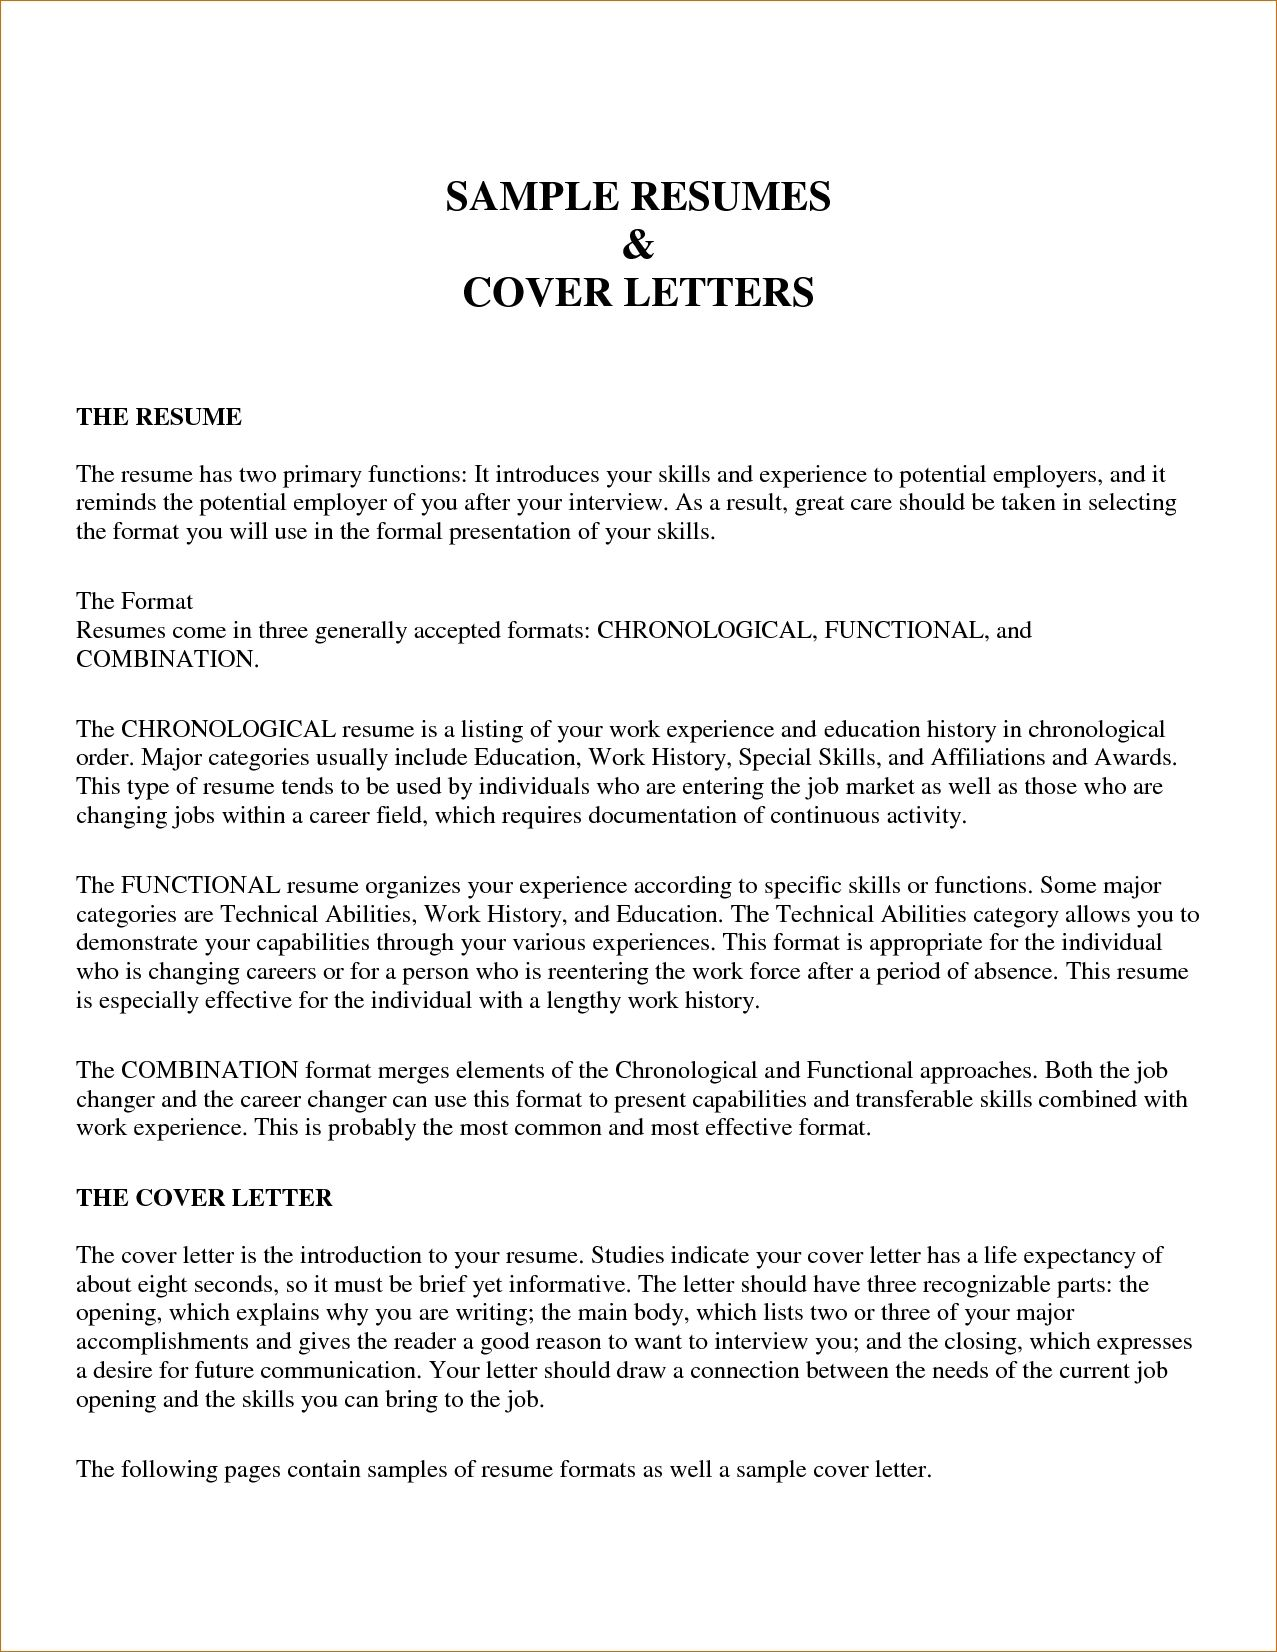 Examples Of Cover Letters Generally Examples Resumes Resume Dsw Job Application Jodoranco Outstanding